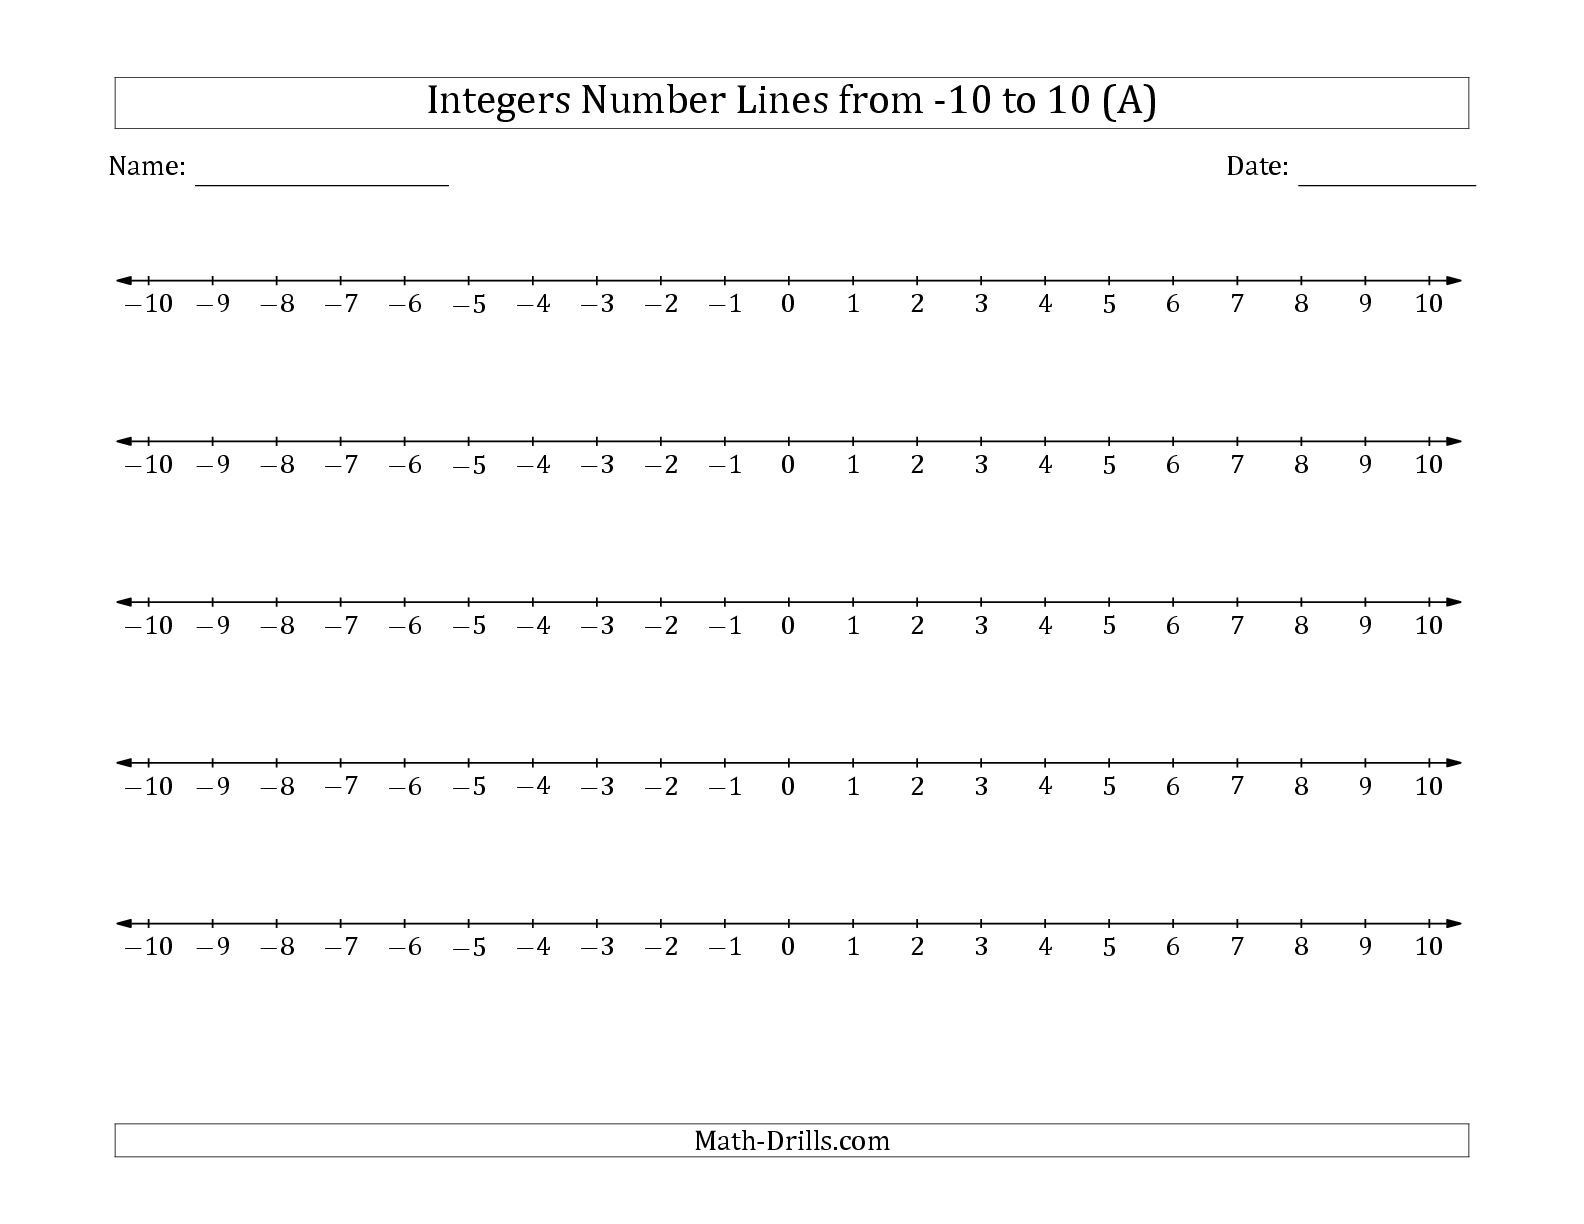 Second Grade Number Line Worksheets the Integers Number Lines From 10 to 10 Math Worksheet From